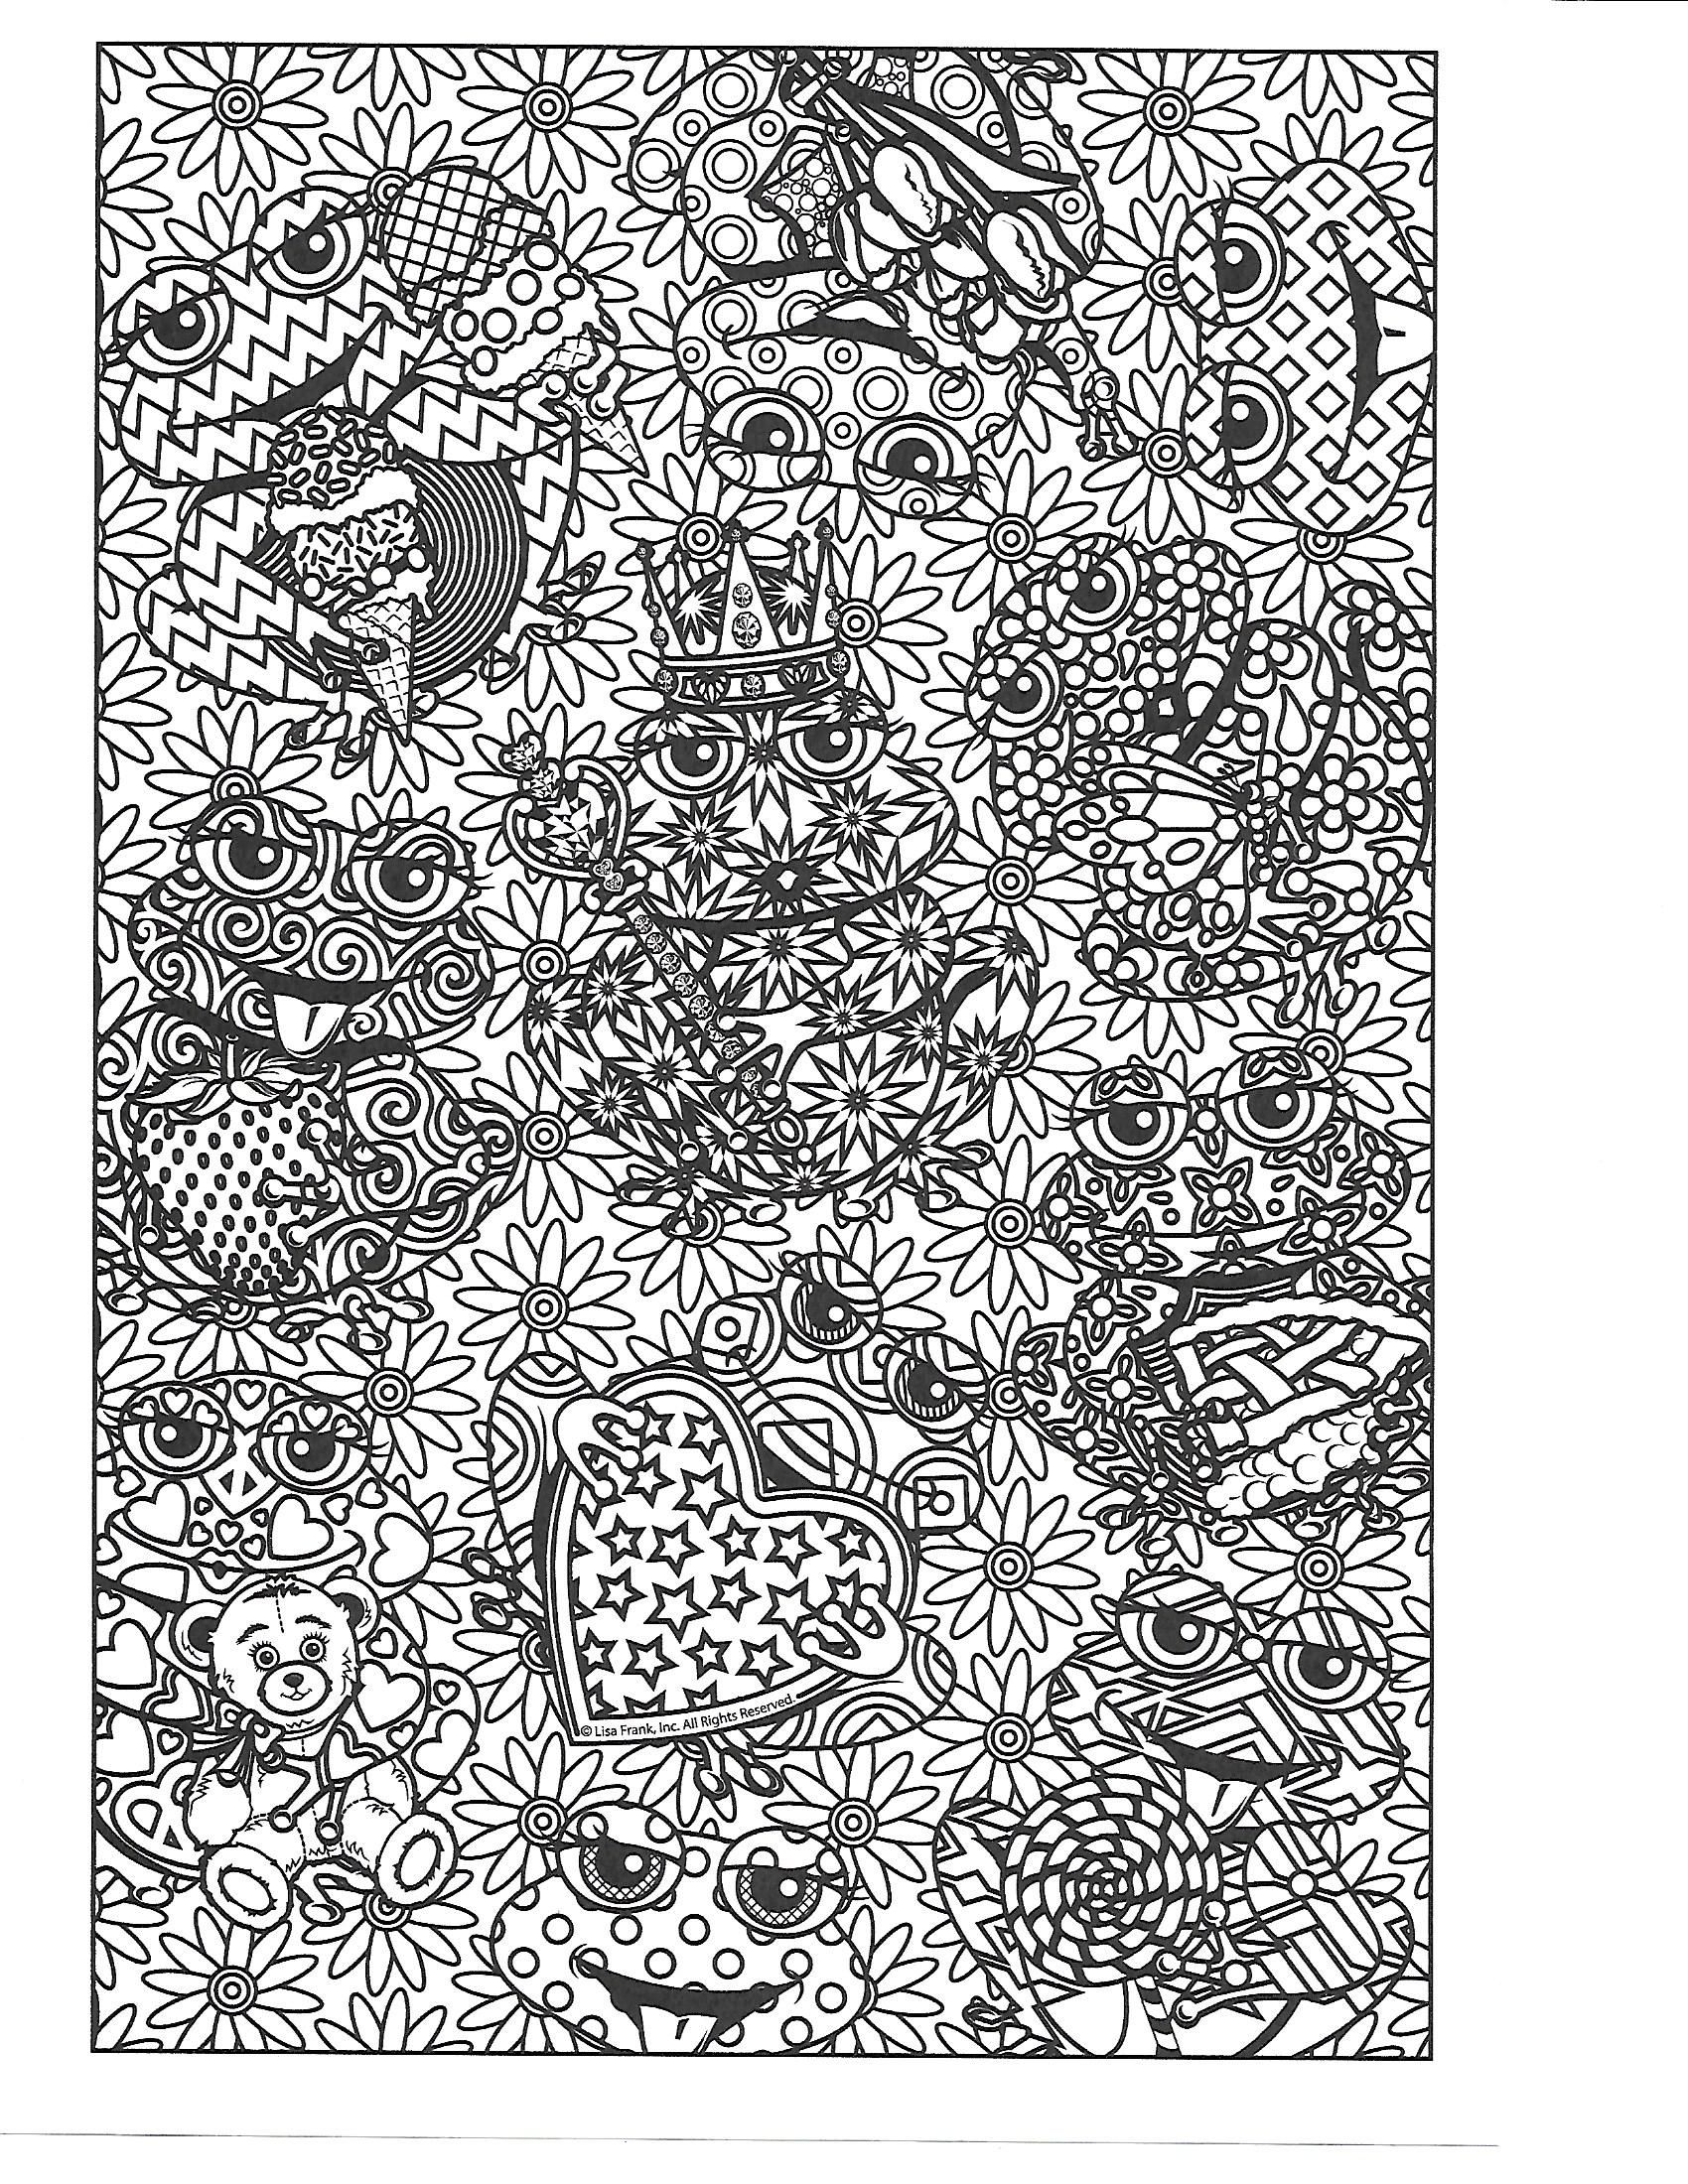 Pin By Beth Conroy On Color Animals Lisa Frank Coloring Books Colouring Pages Coloring Pictures [ 2200 x 1700 Pixel ]